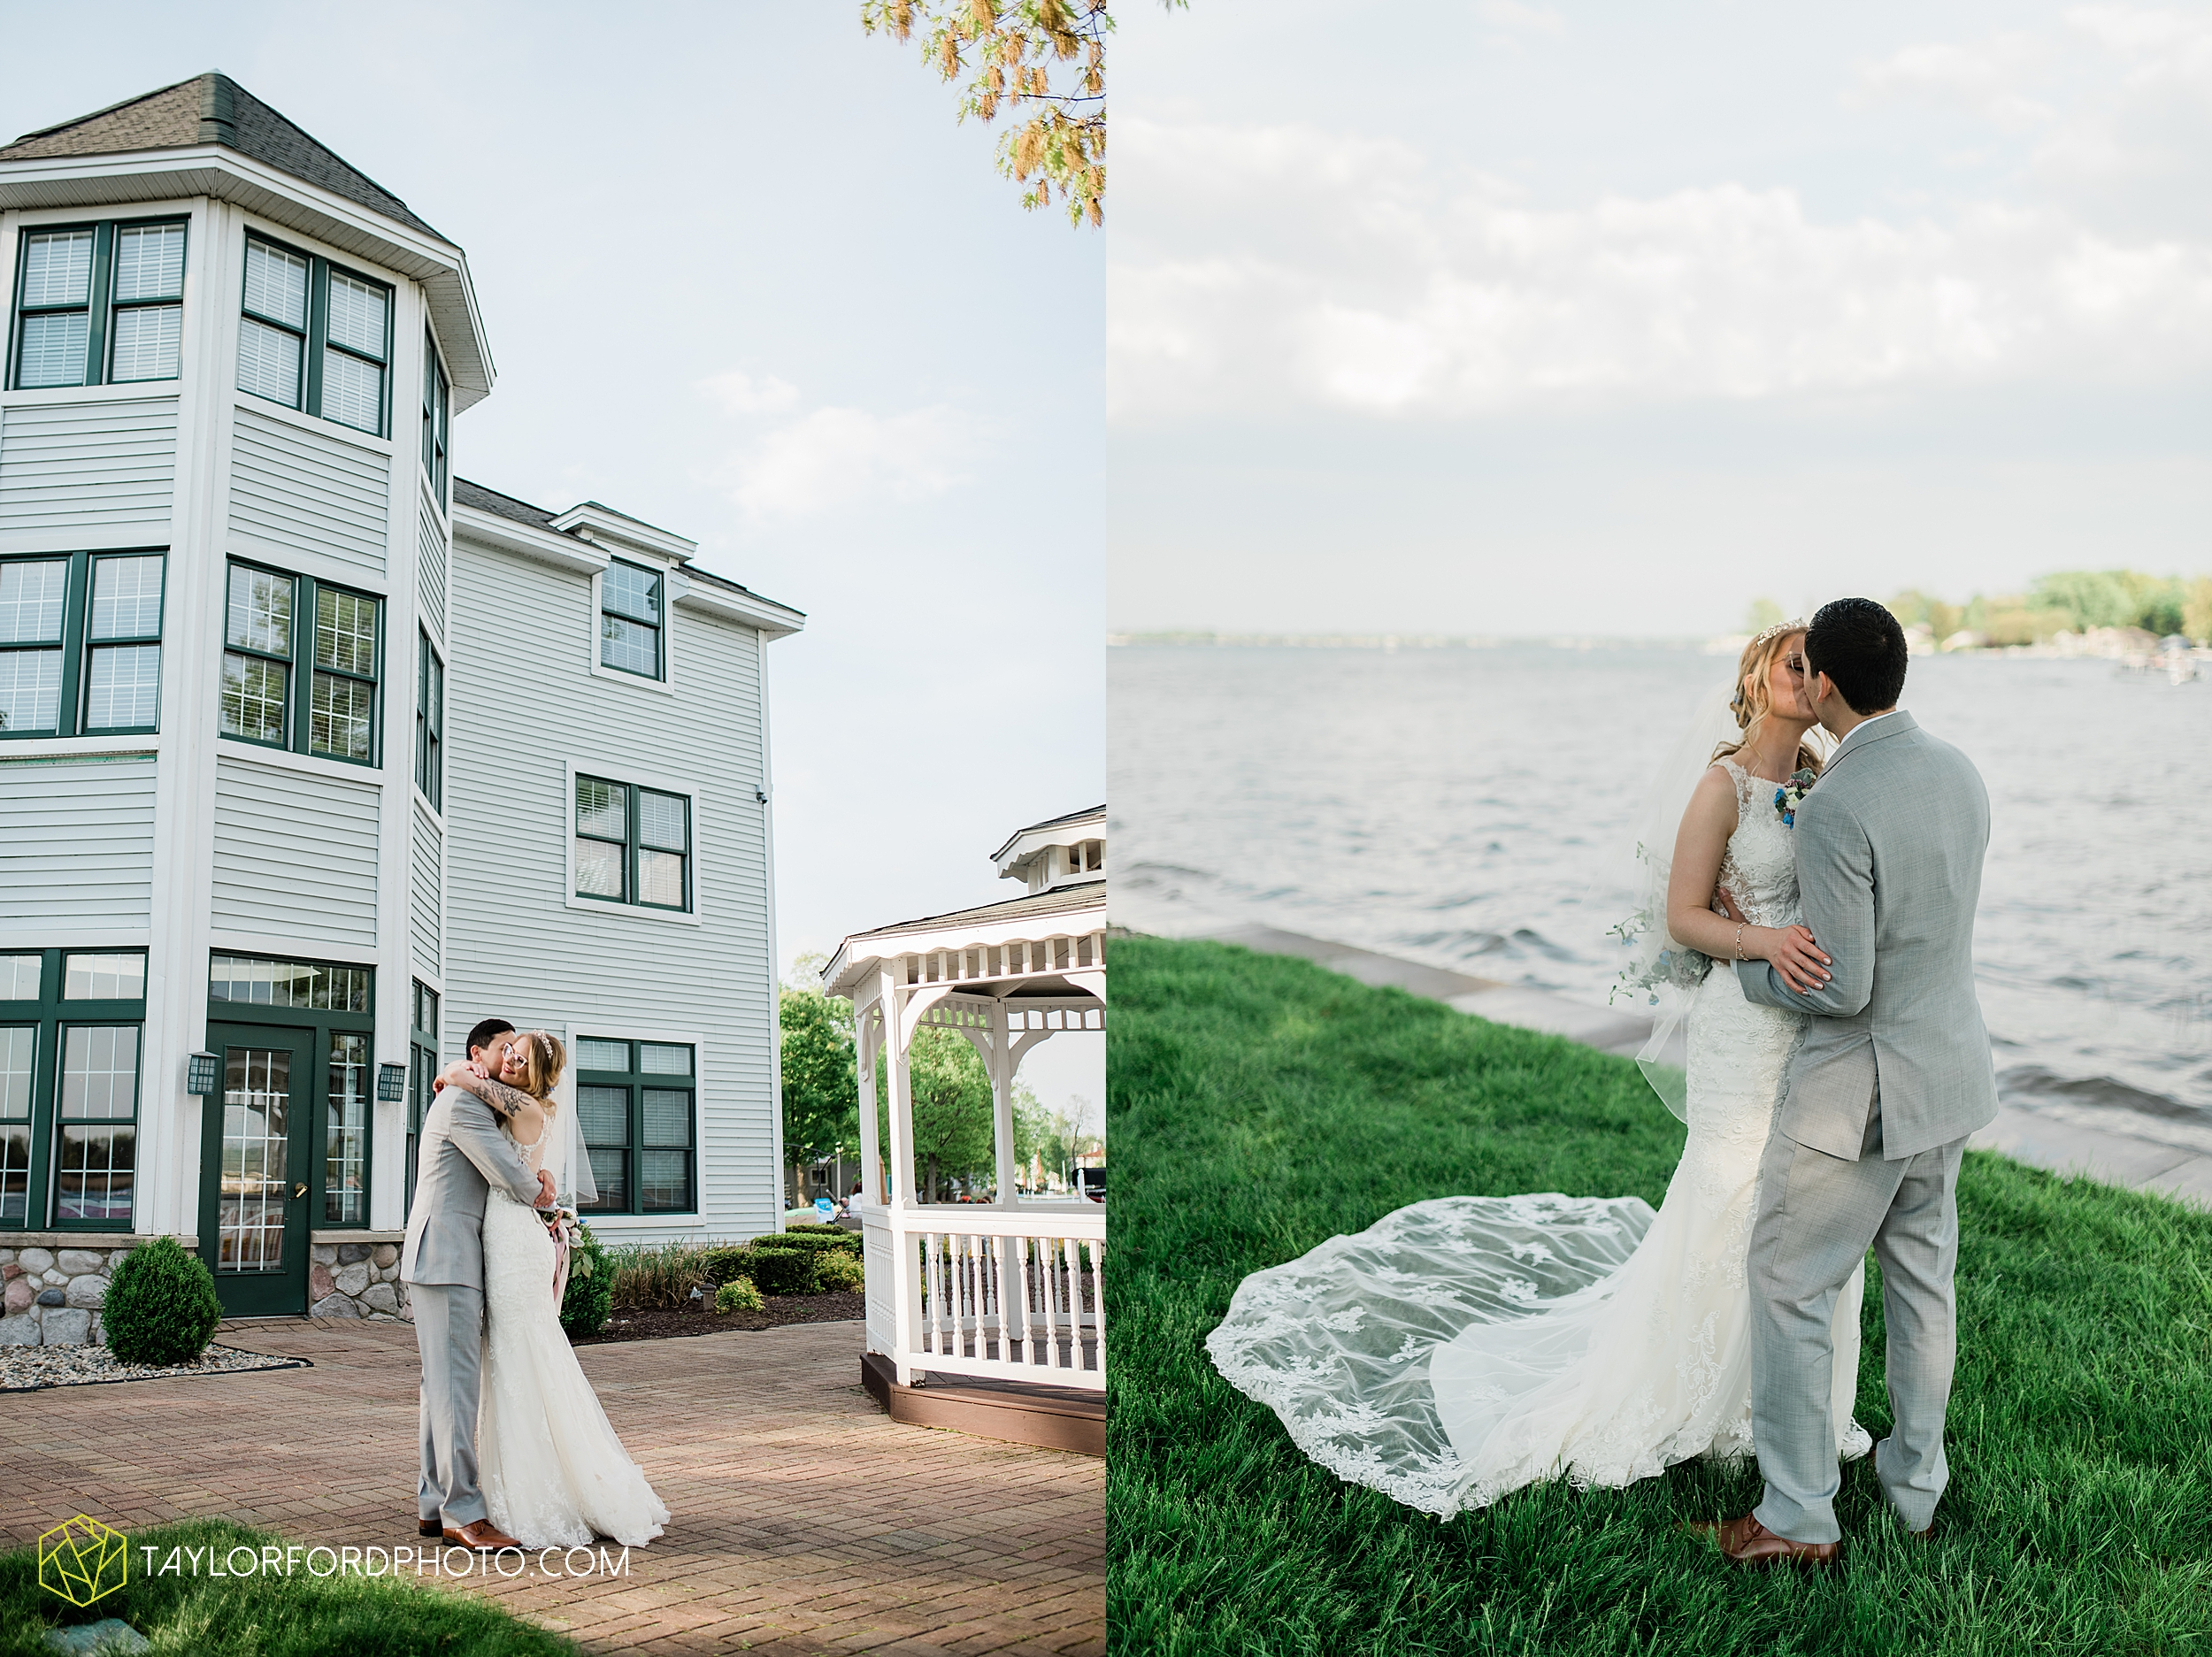 janine-shaun-oakwood-resort-syracuse-indiana-lake-wawasee-wedding-hilltop-one-fine-day-photographer-photography-taylor-ford-hirschy-photographer_2780.jpg